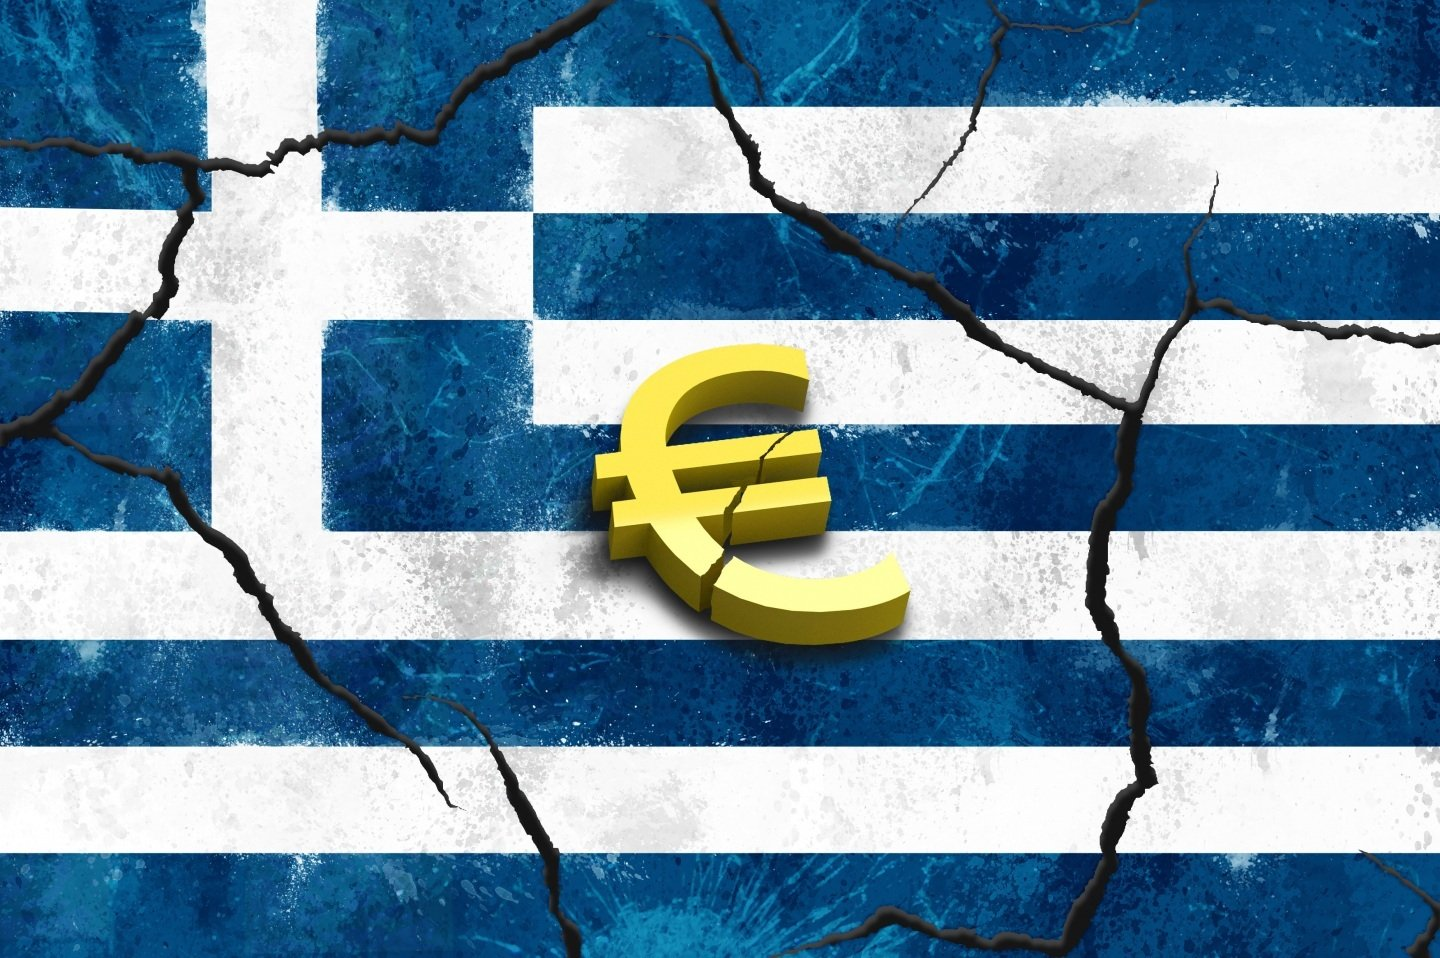 economic crisis in europe The financial crisis of 2008: as in the us, the financial crisis spilled into europe's overall economy germany's economic output, the largest in europe.